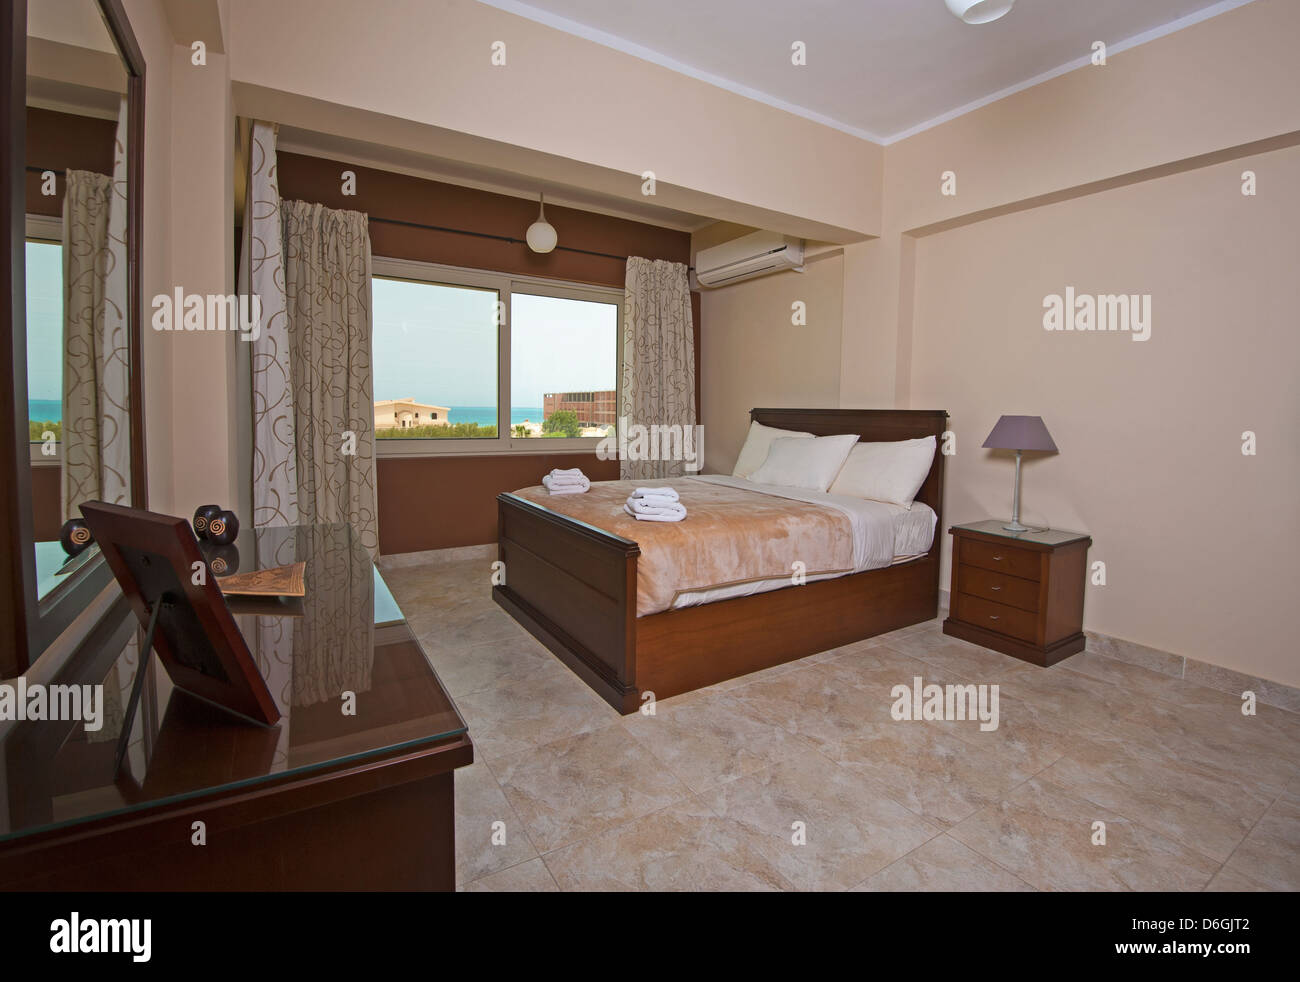 Show Home Bedroom Bedroom In A Luxury Apartment Show Home With Interior Design Stock